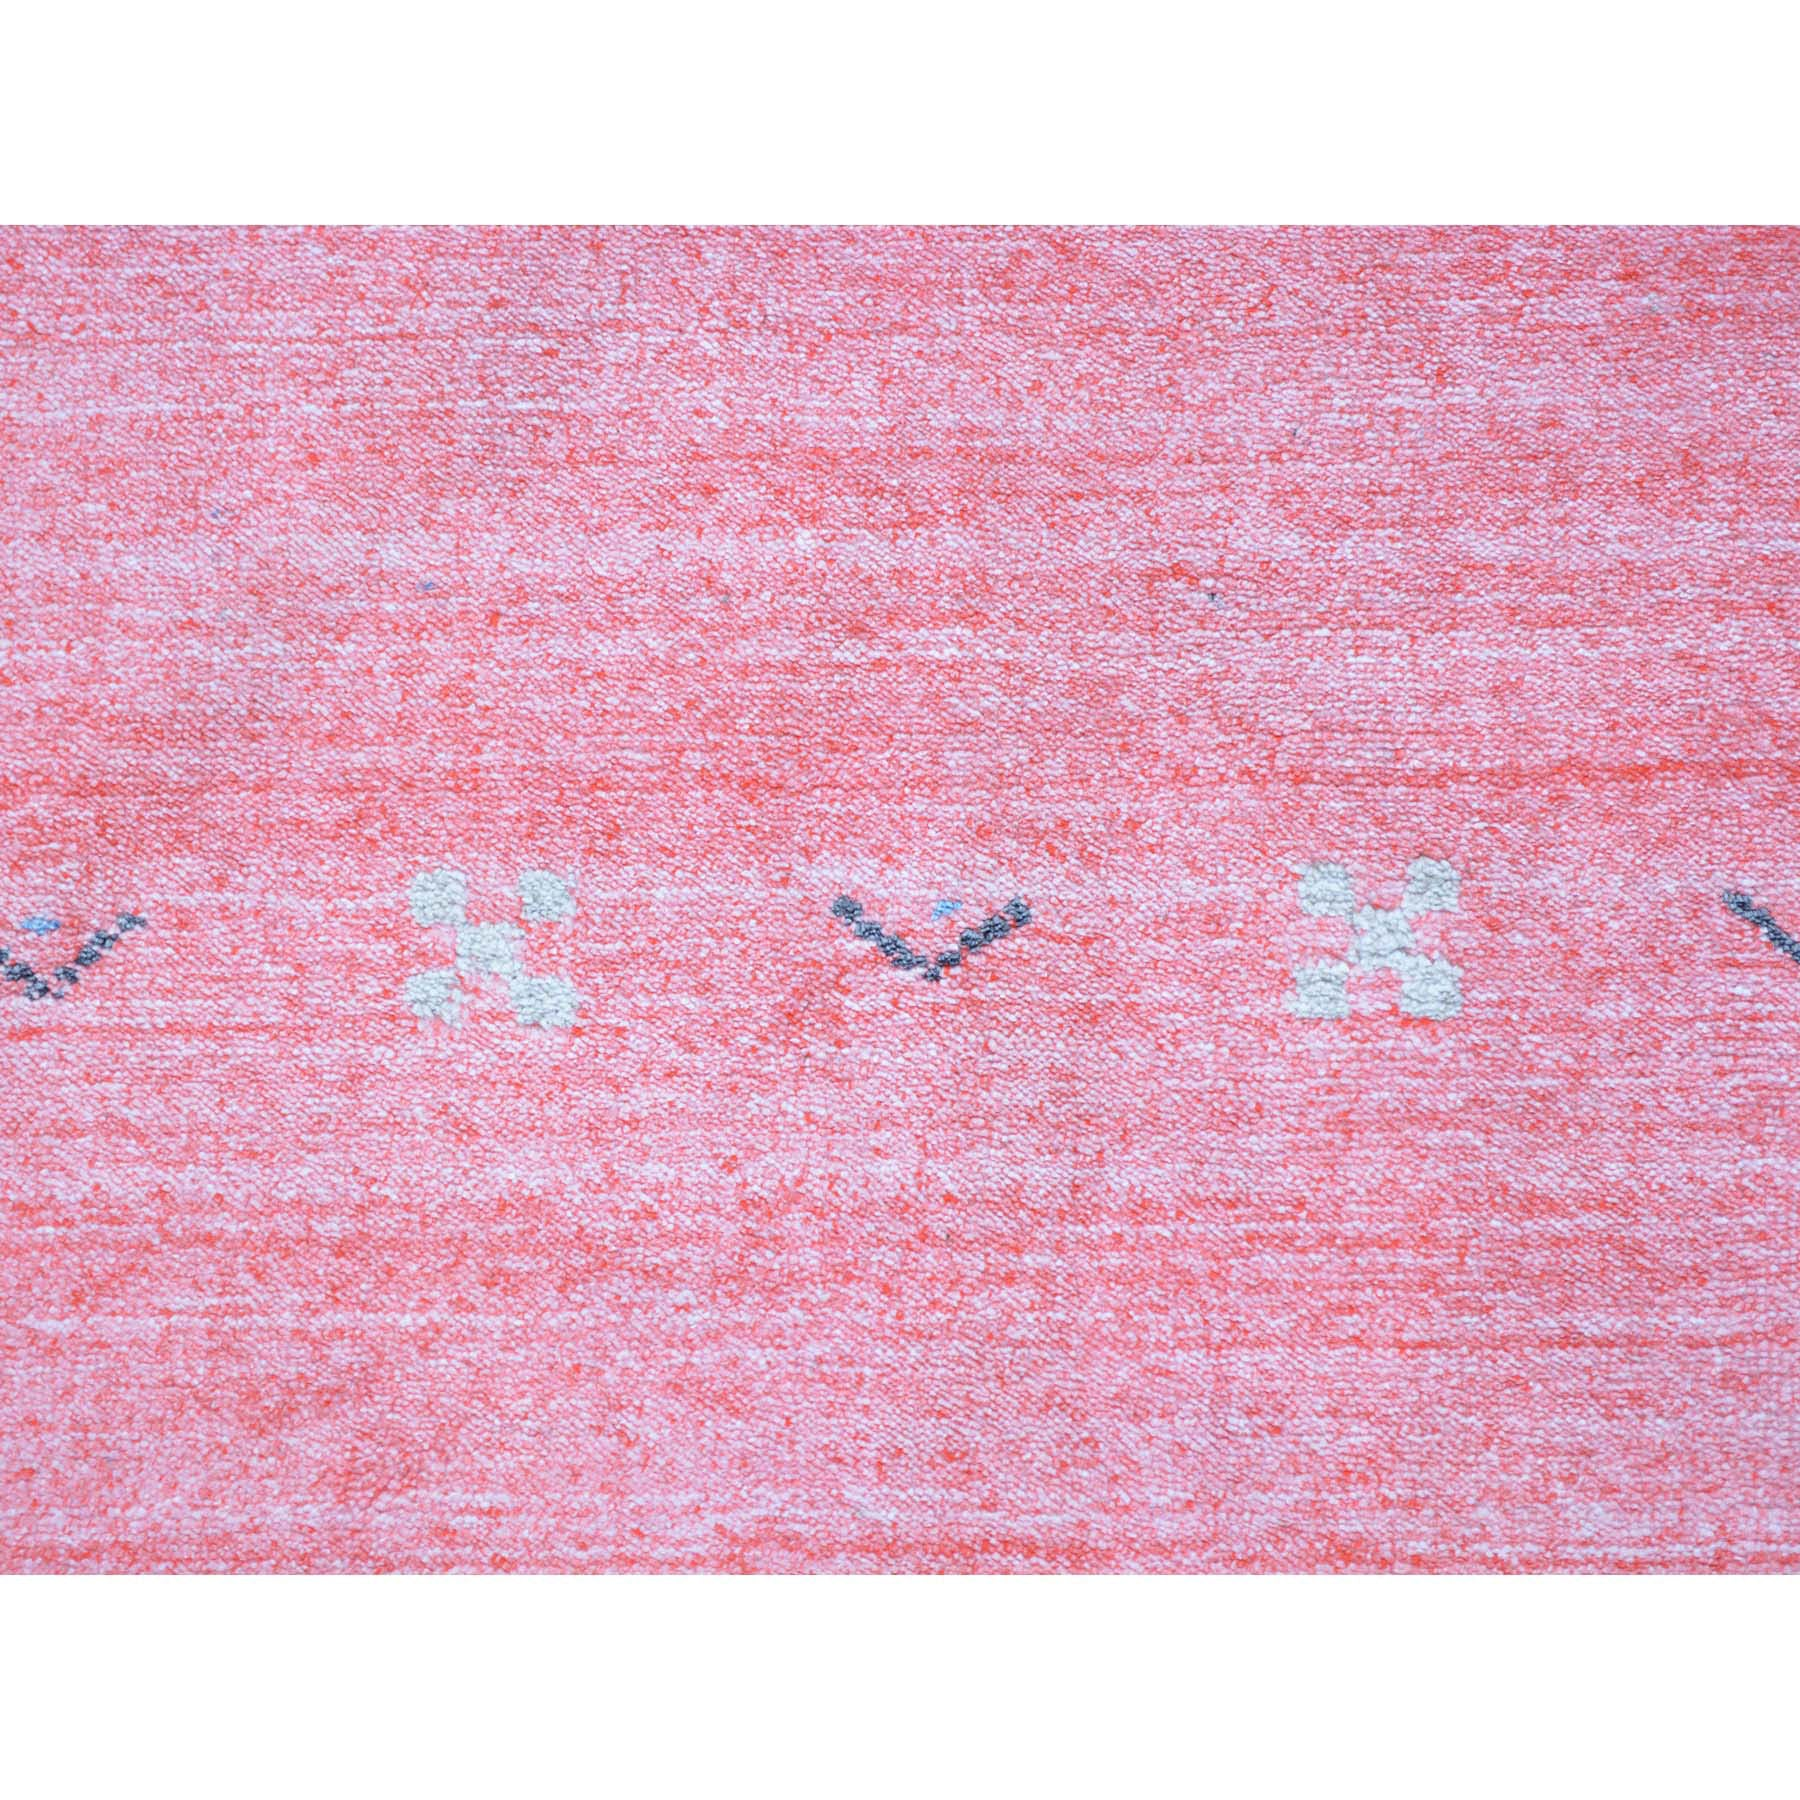 "Handmade Modern and Contemporary Runner Rug > Design# SH25641 > Size: 2'-6"" x 17'-9"" [ONLINE ONLY]"